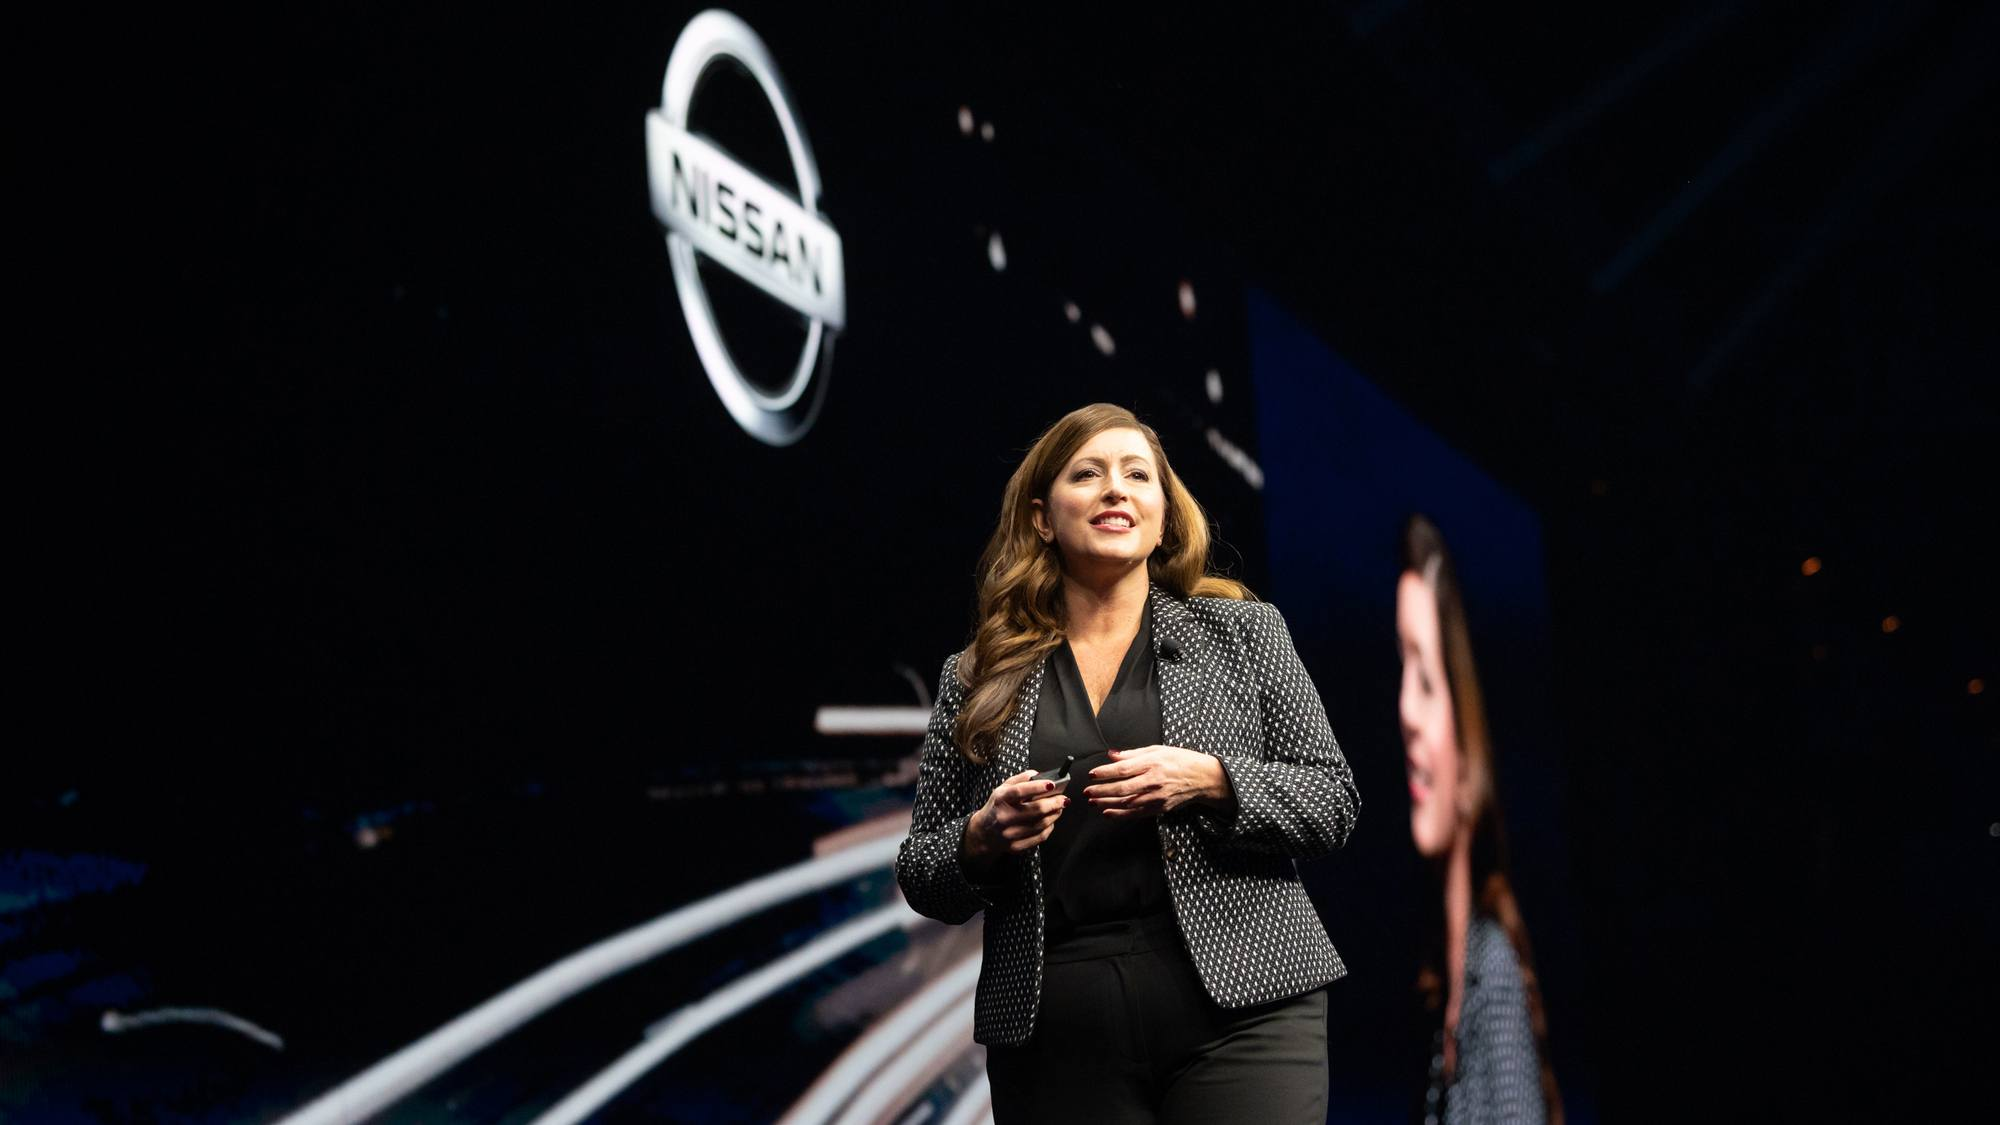 Danielle Beringer from Nissan North America on stage at TC19